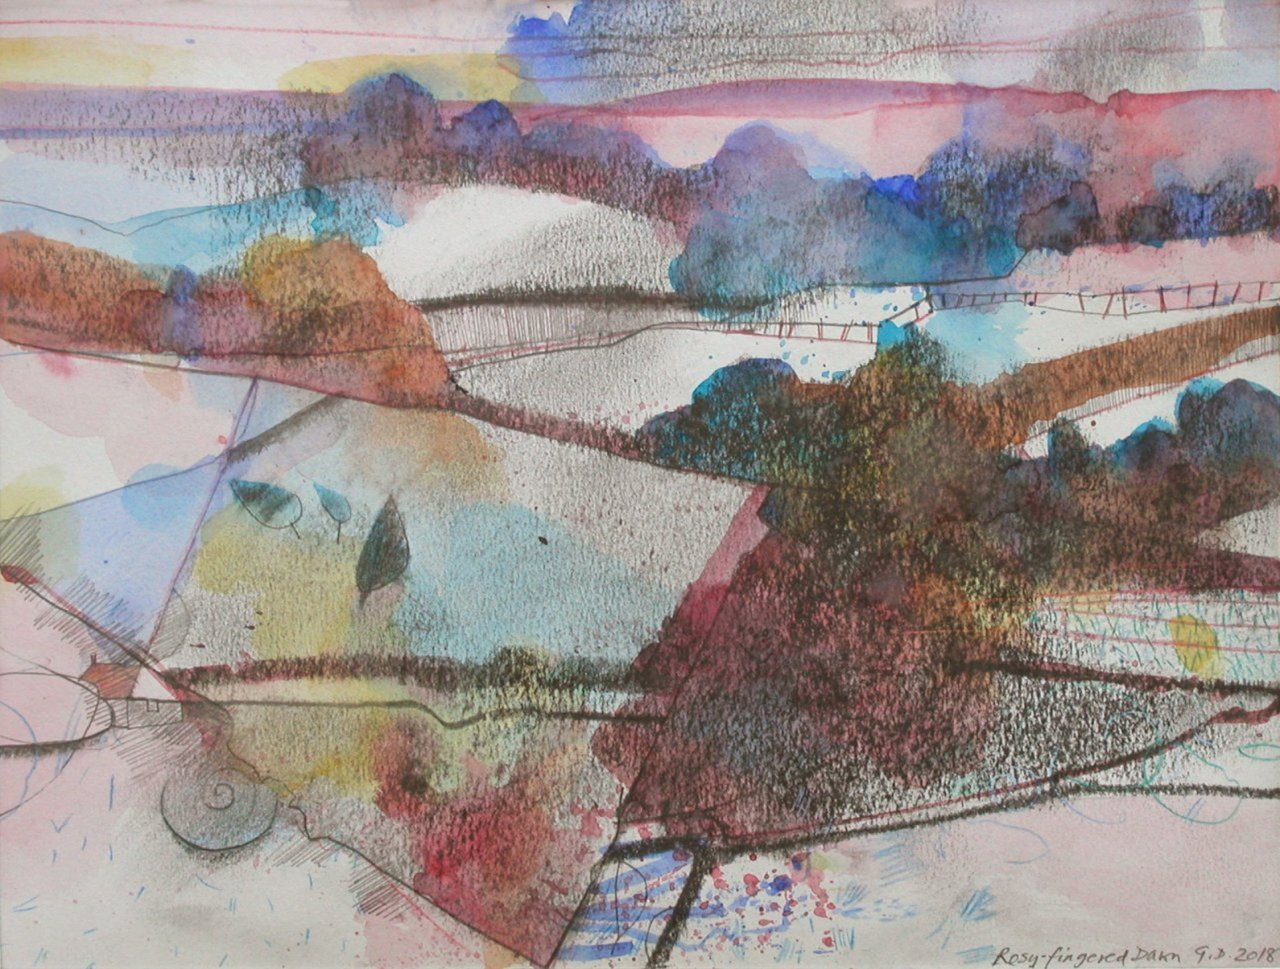 Gerry Dudgeon Rosy-fingered Dawn